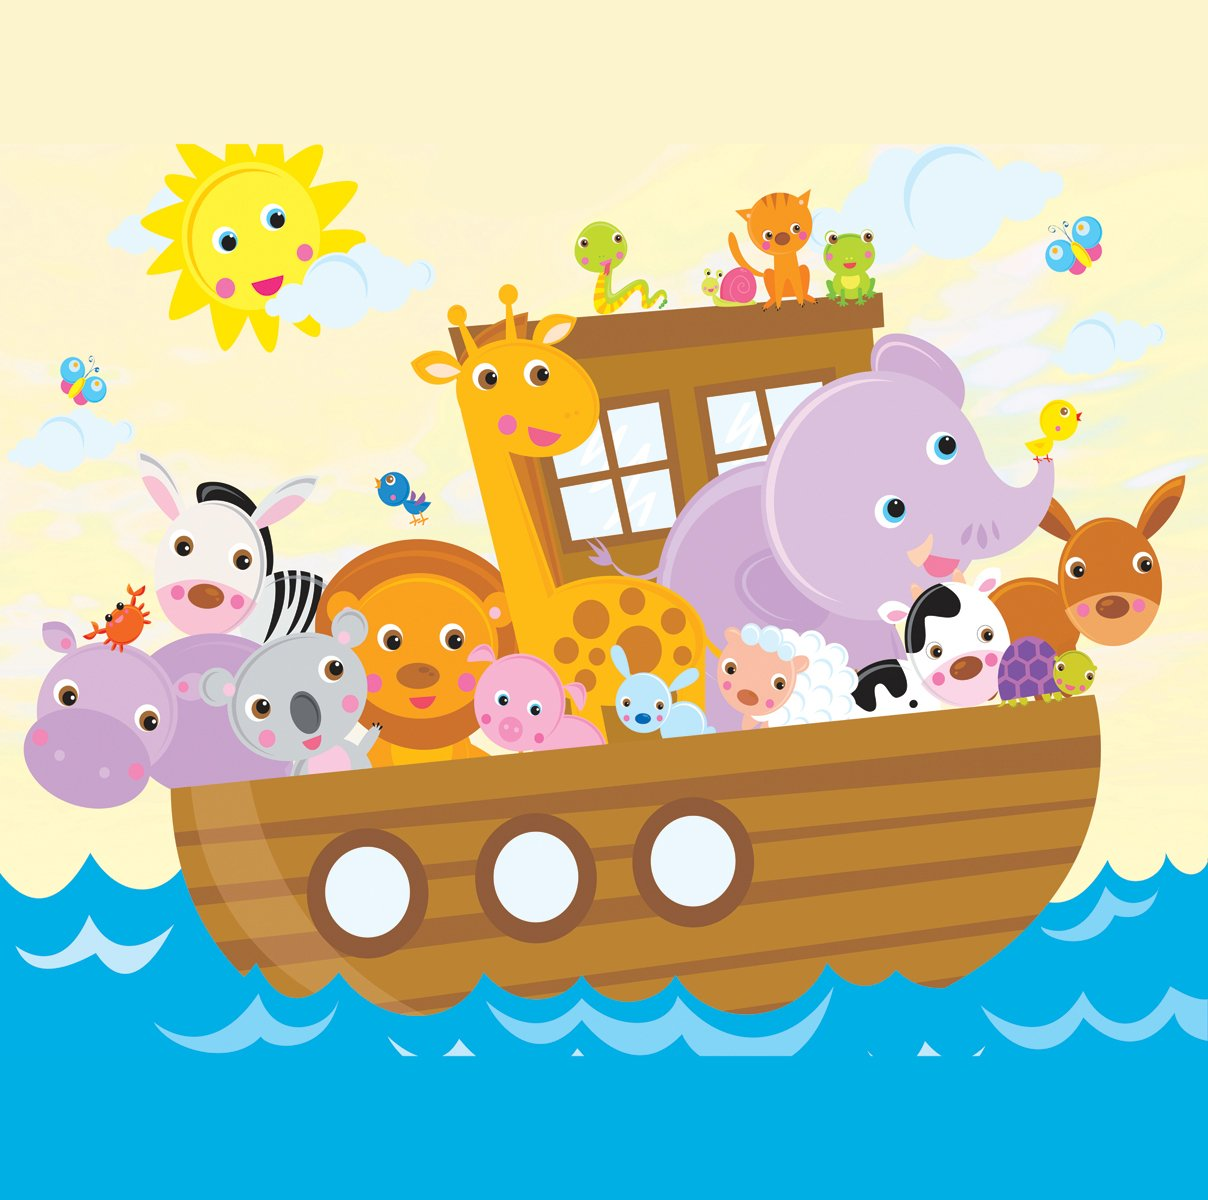 JP London SQM2064PS Peel and Stick Removable Wall Decal Sticker Mural Noah's Ark Animal Friends At 6' High By 6' Wide by JP London (Image #1)